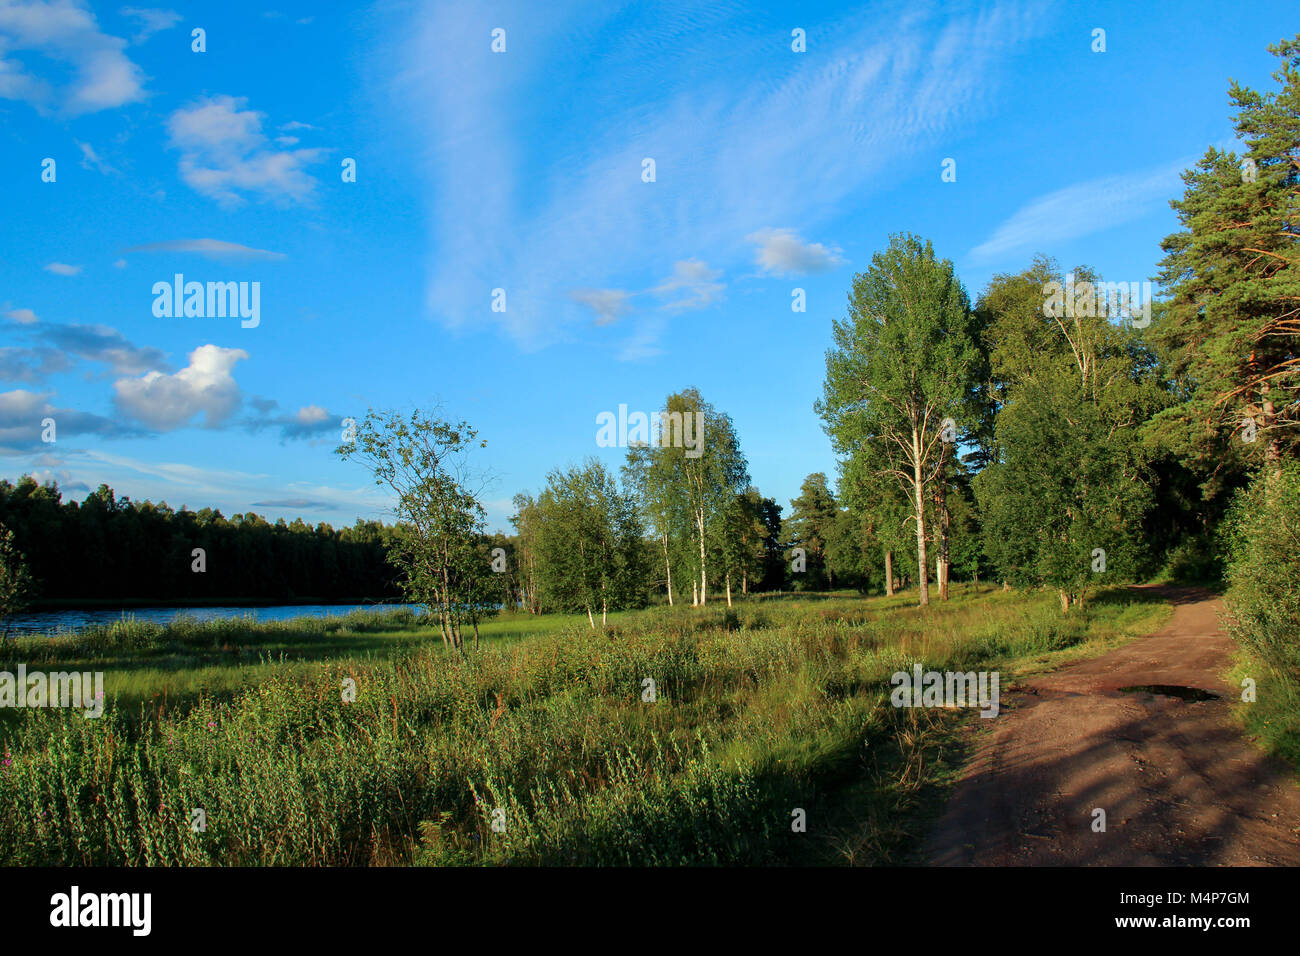 Rural road by a river at sunset in summer. - Stock Image